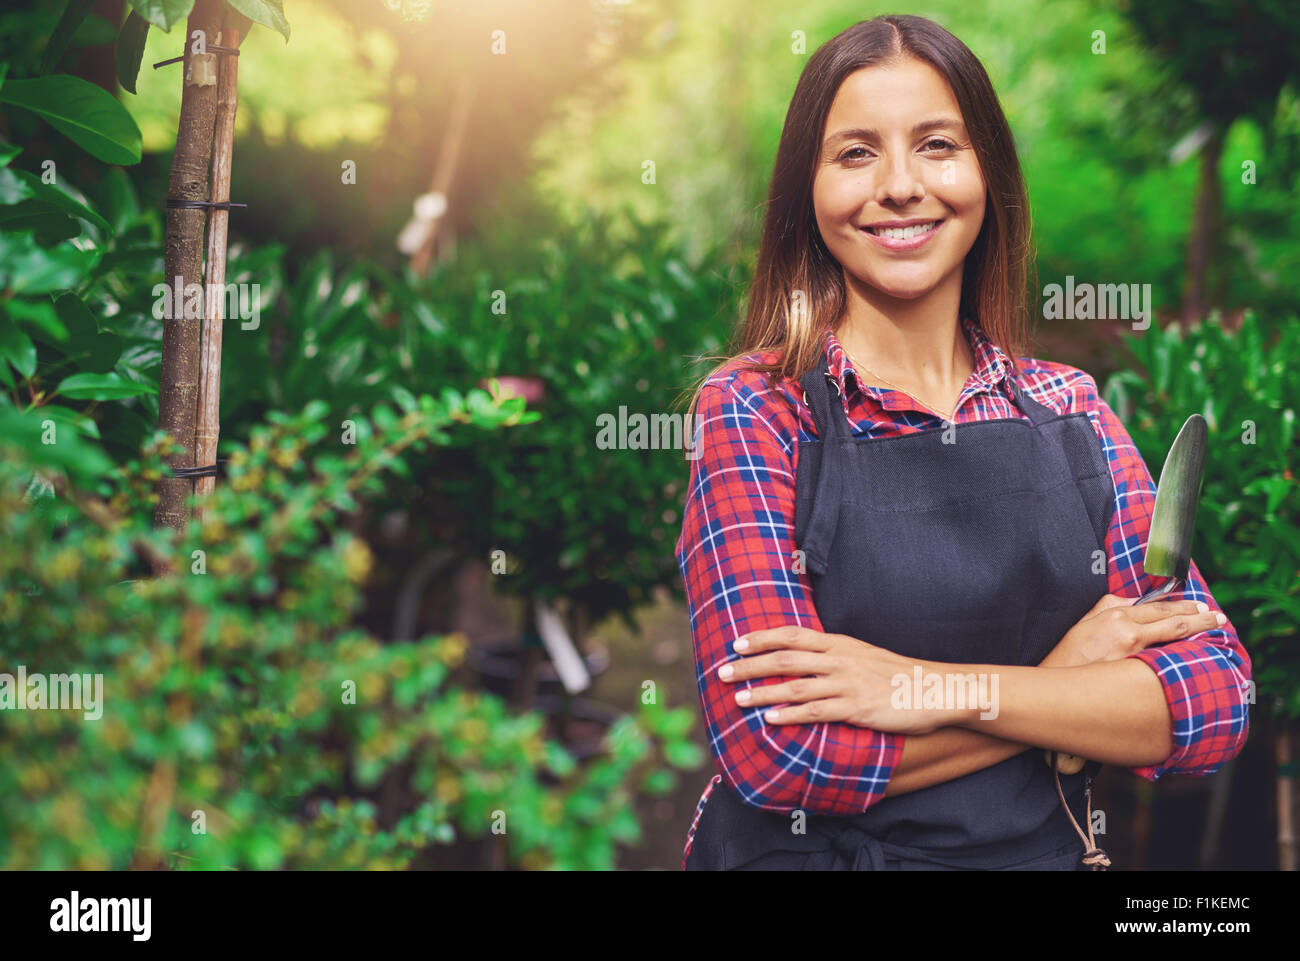 Smiling happy young woman enjoying her garden standing with folded arms against lush greenery with a trowel in her - Stock Image